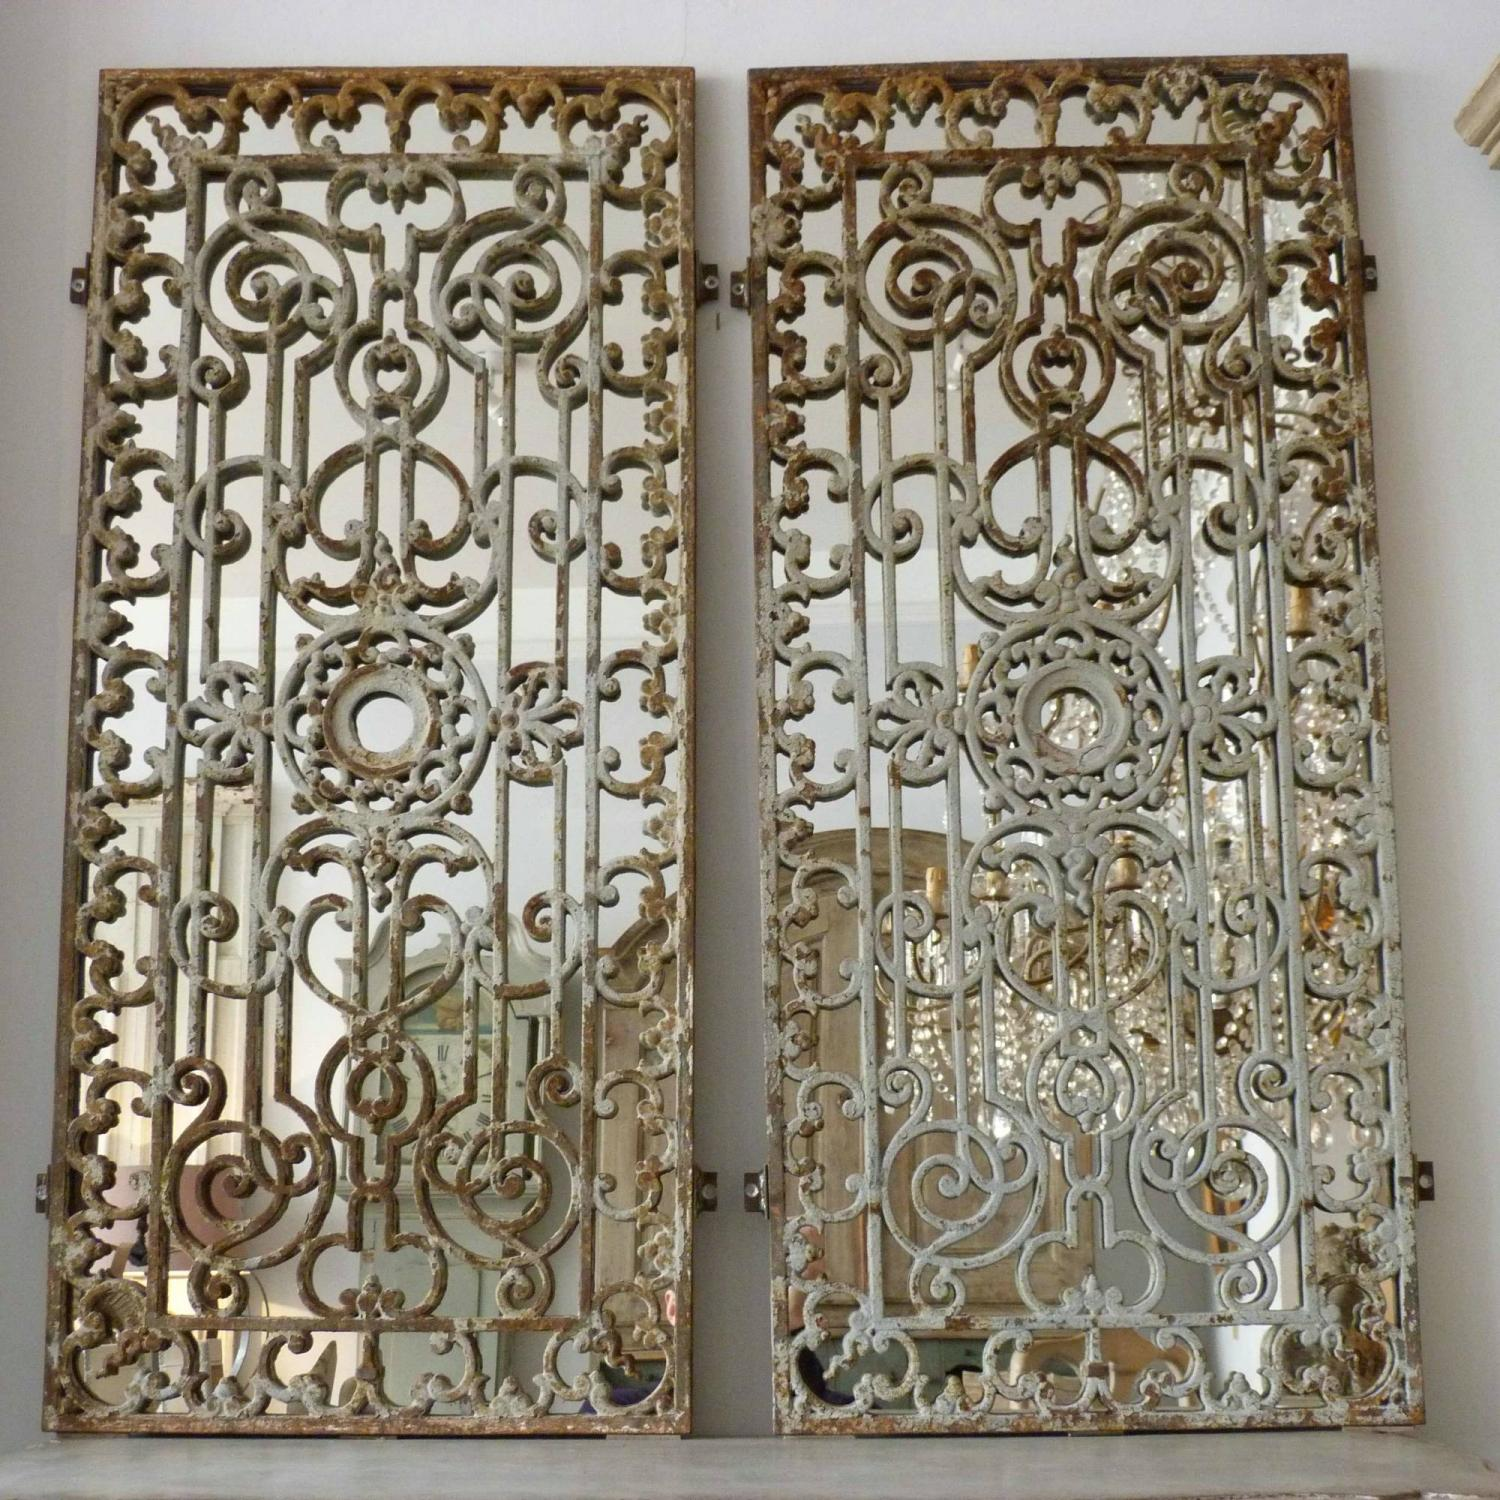 PAIR OF FRENCH 19TH CENTURY DECORATIVE IRON GRILL MIRRORS